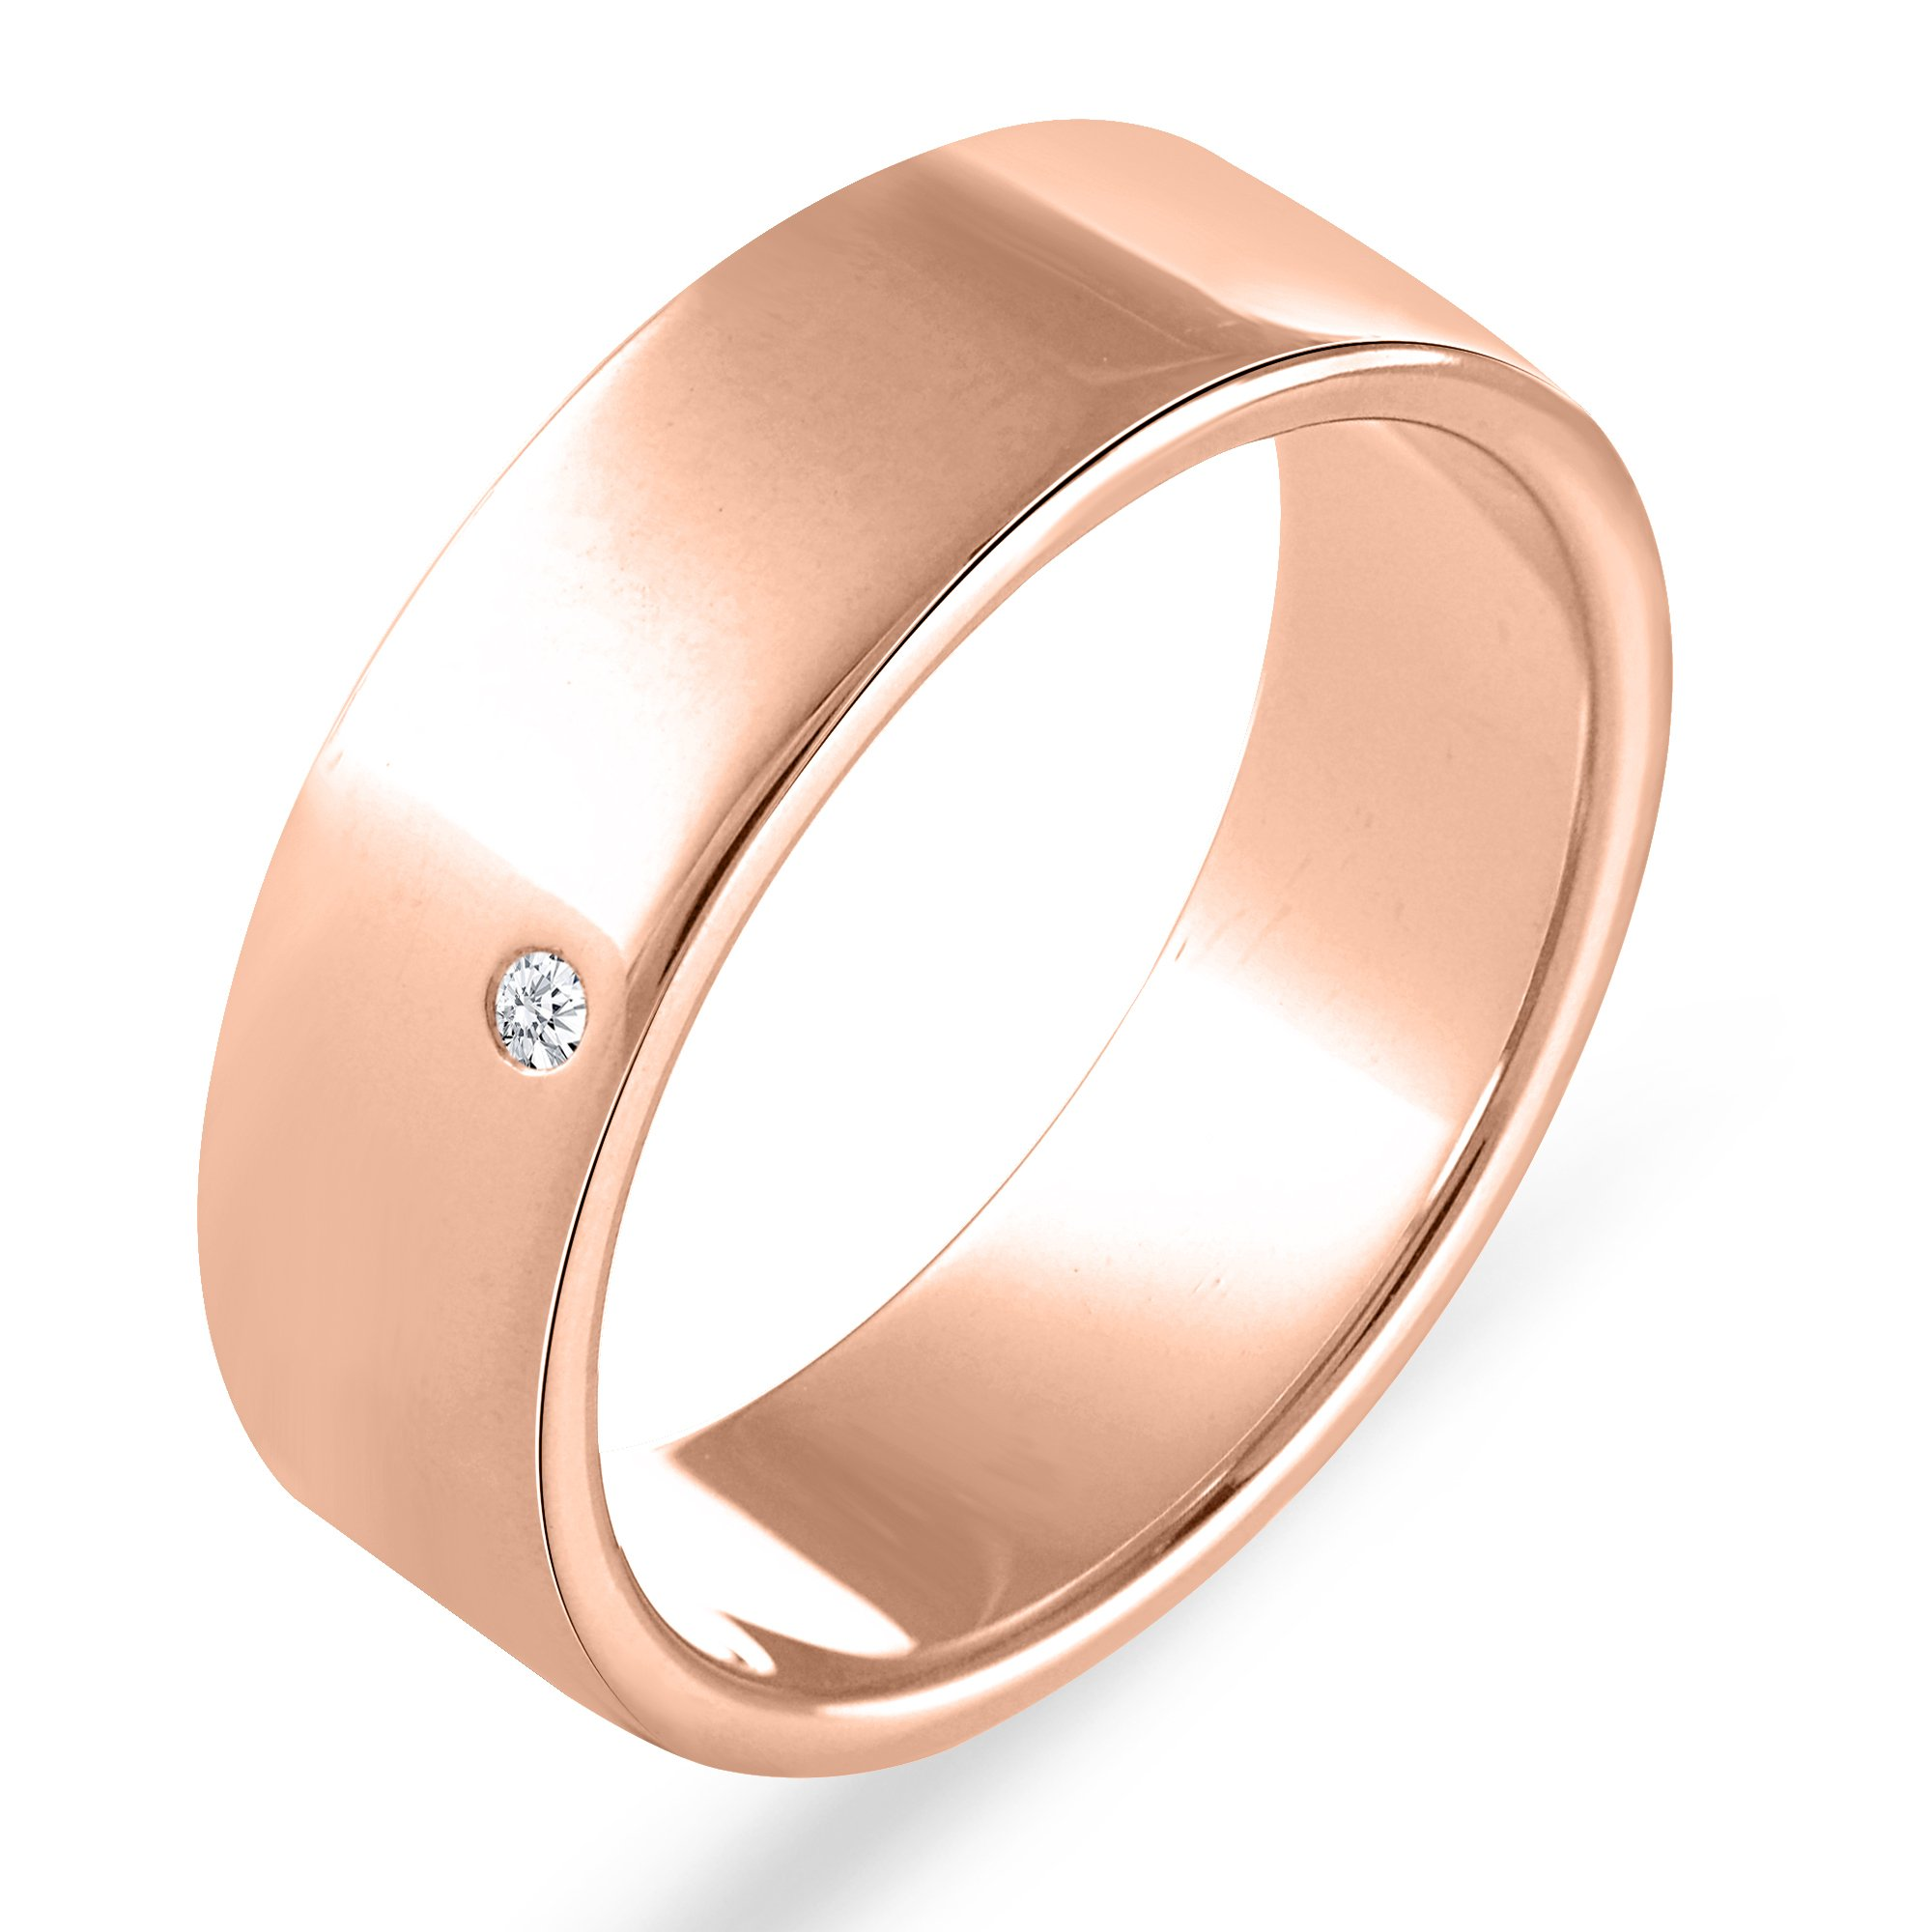 7 MM Wide 0.02 Ct. 10K Rose Gold Real Natural Round Cut Diamond Anniversary Band Wedding Ring Comfort Fit